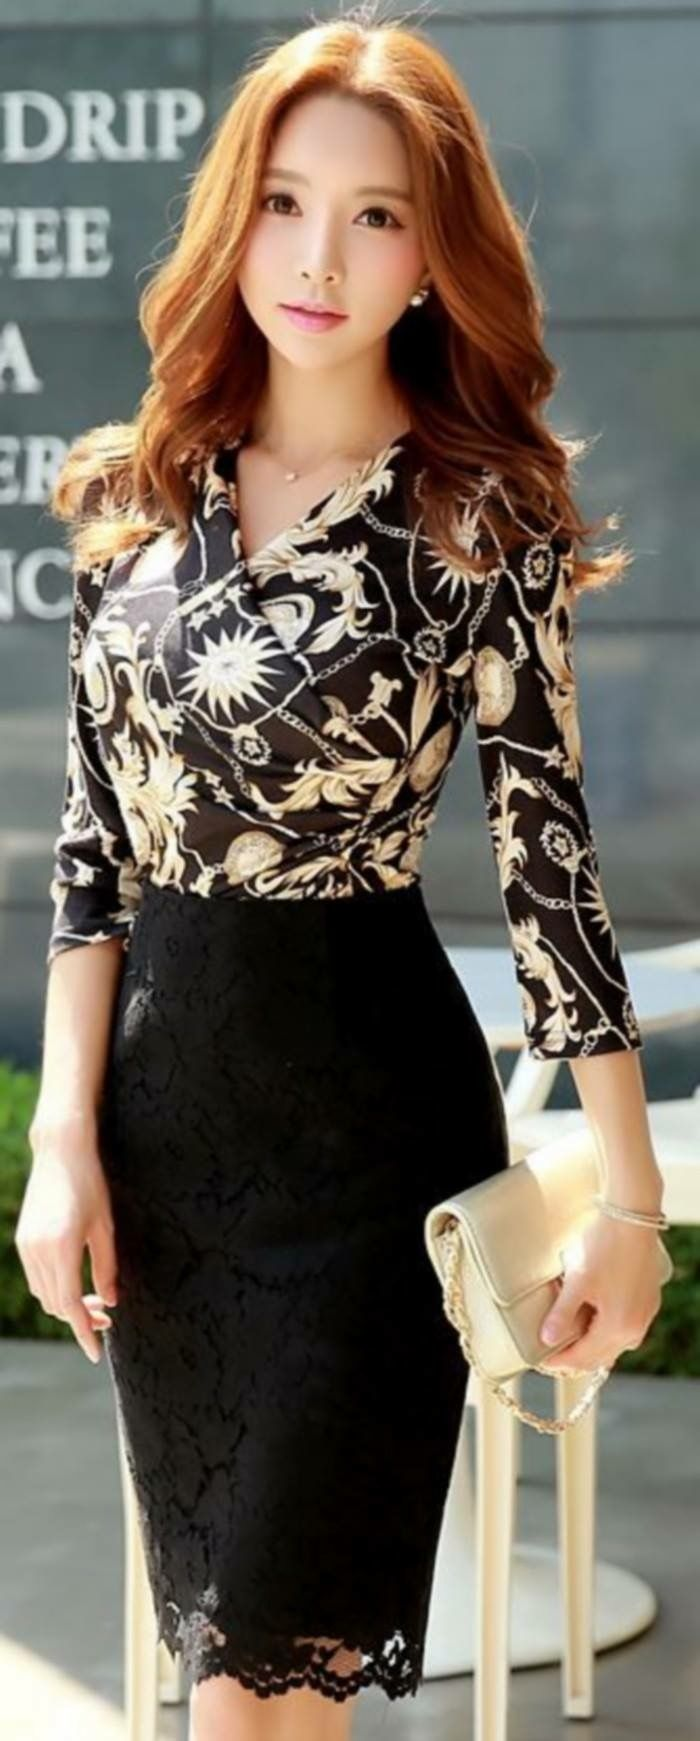 Floral too black skirt. Dressy professional work outfit